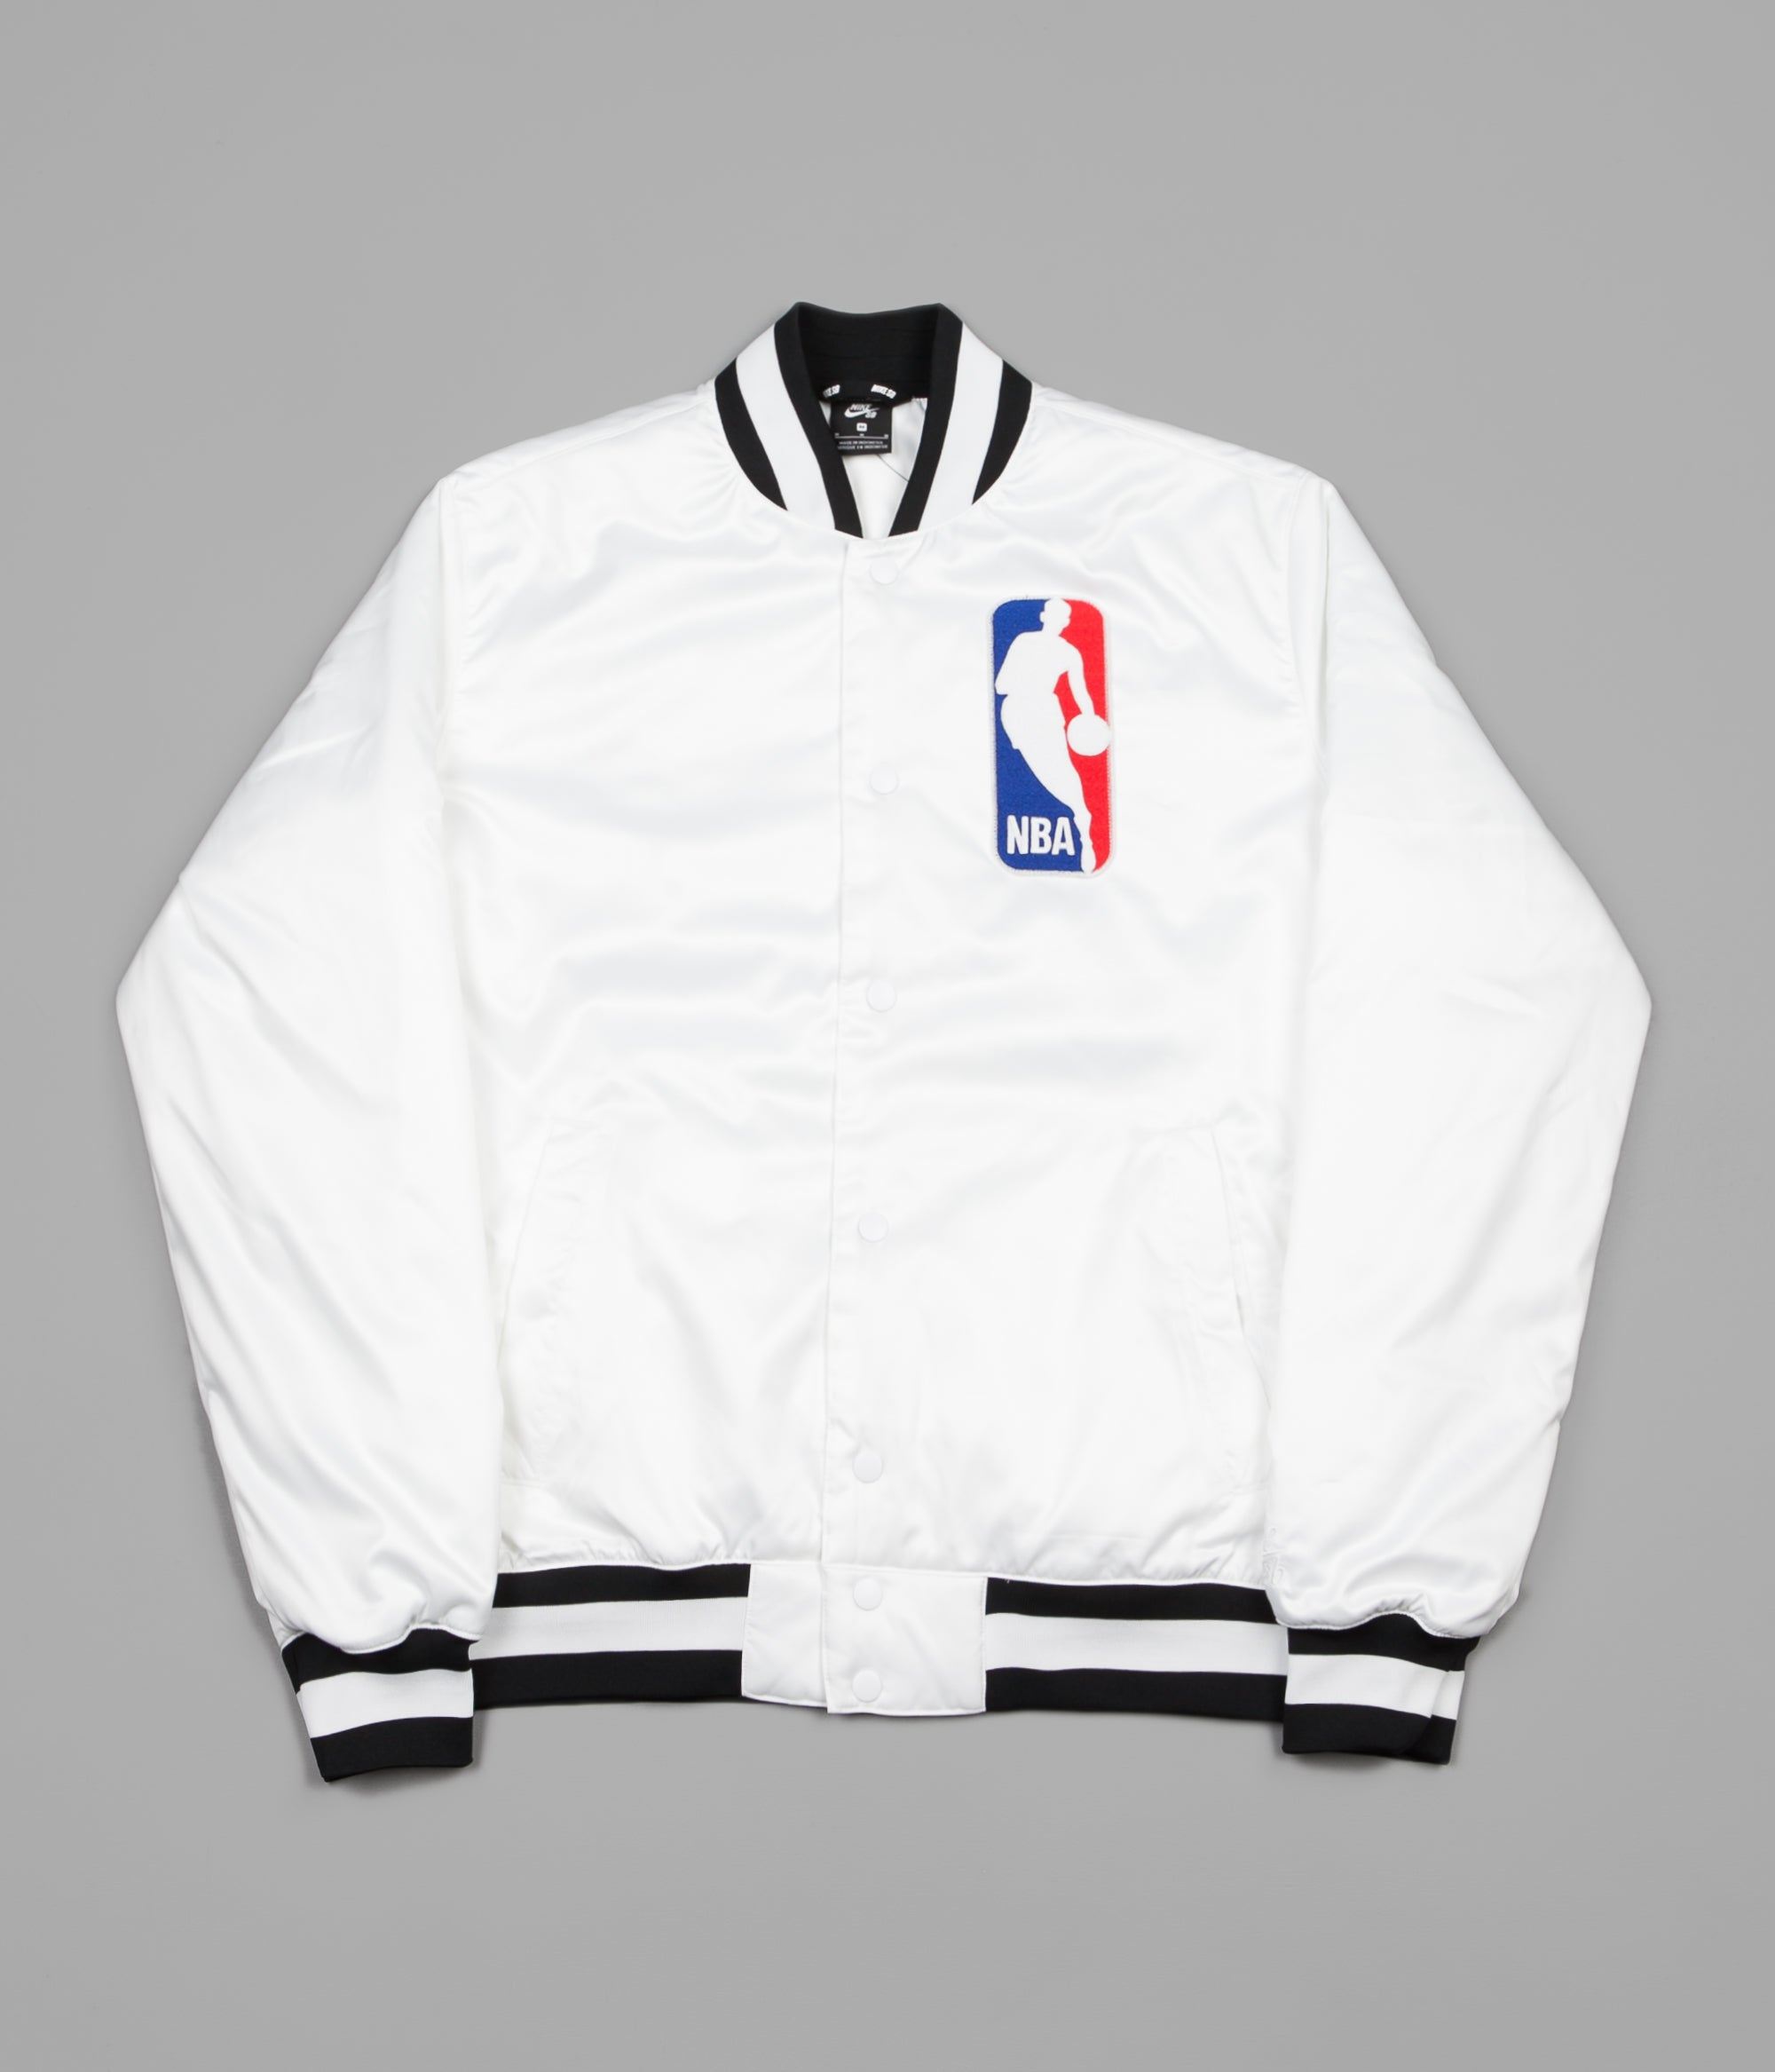 buy online 91c17 80171 Nike SB x NBA Bomber Jacket - White